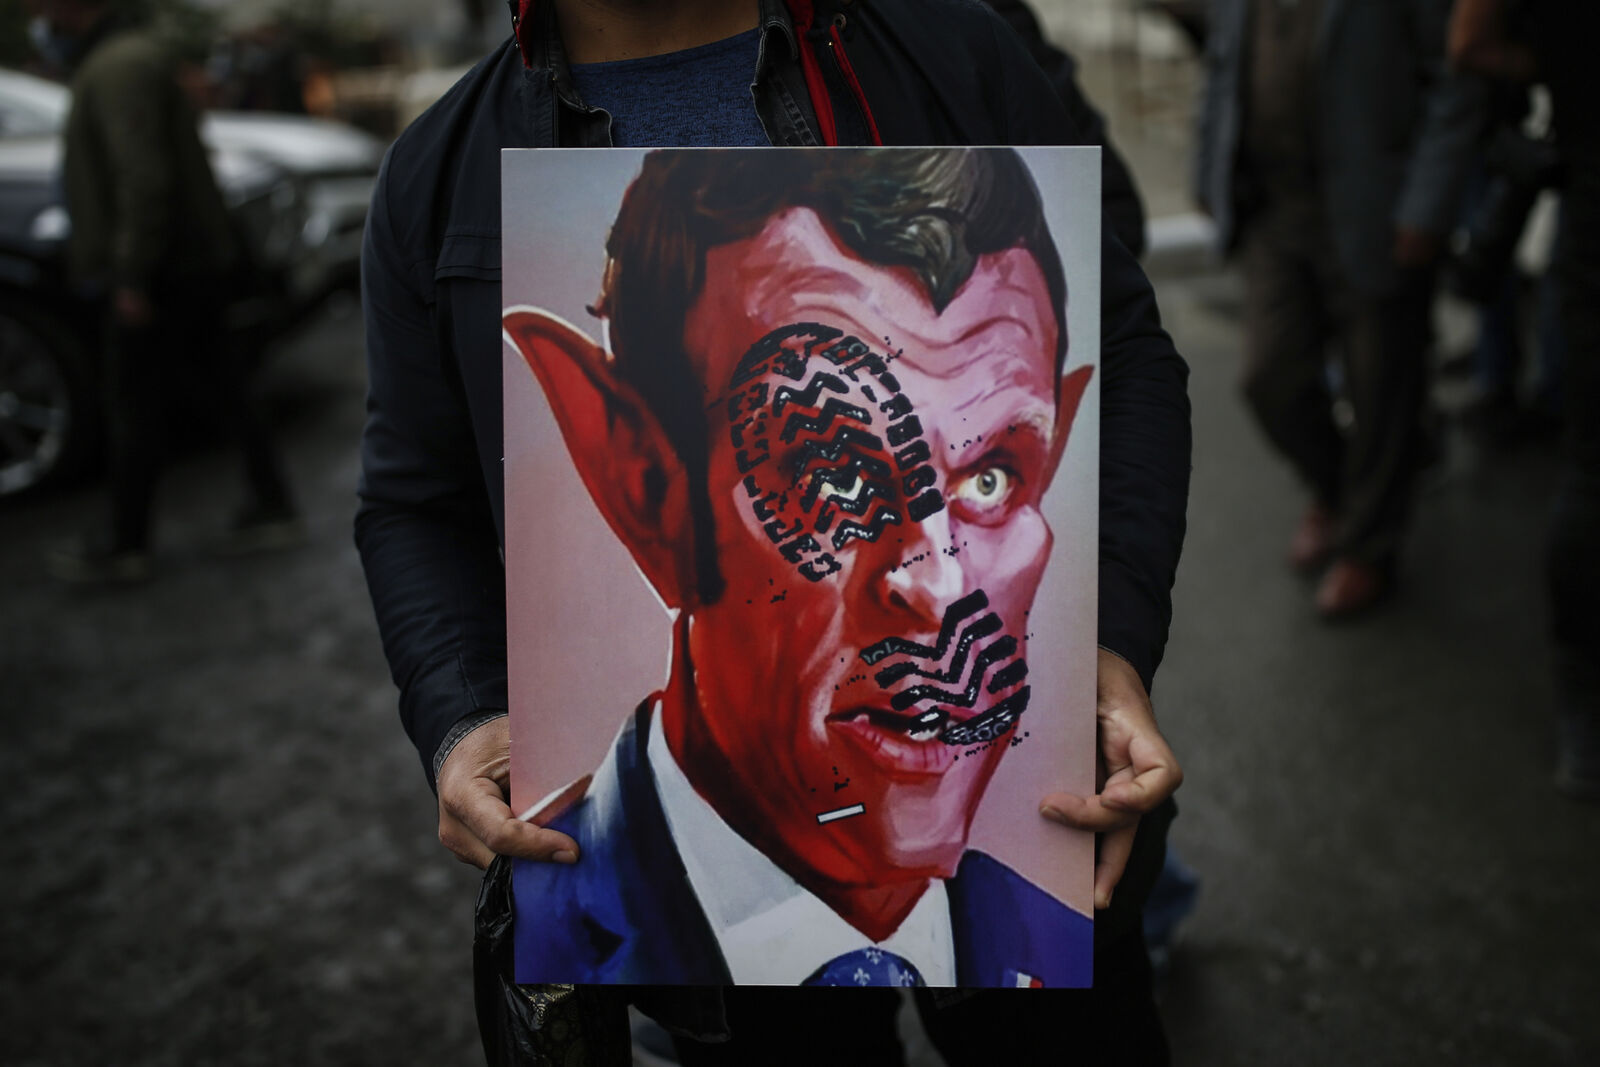 A man holds a poster with a caricature of France's President Emmanuel Macron, depicting him as devil during a protest against France in Istanbul, Friday, Oct. 30, 2020. (AP Photo/Emrah Gurel)